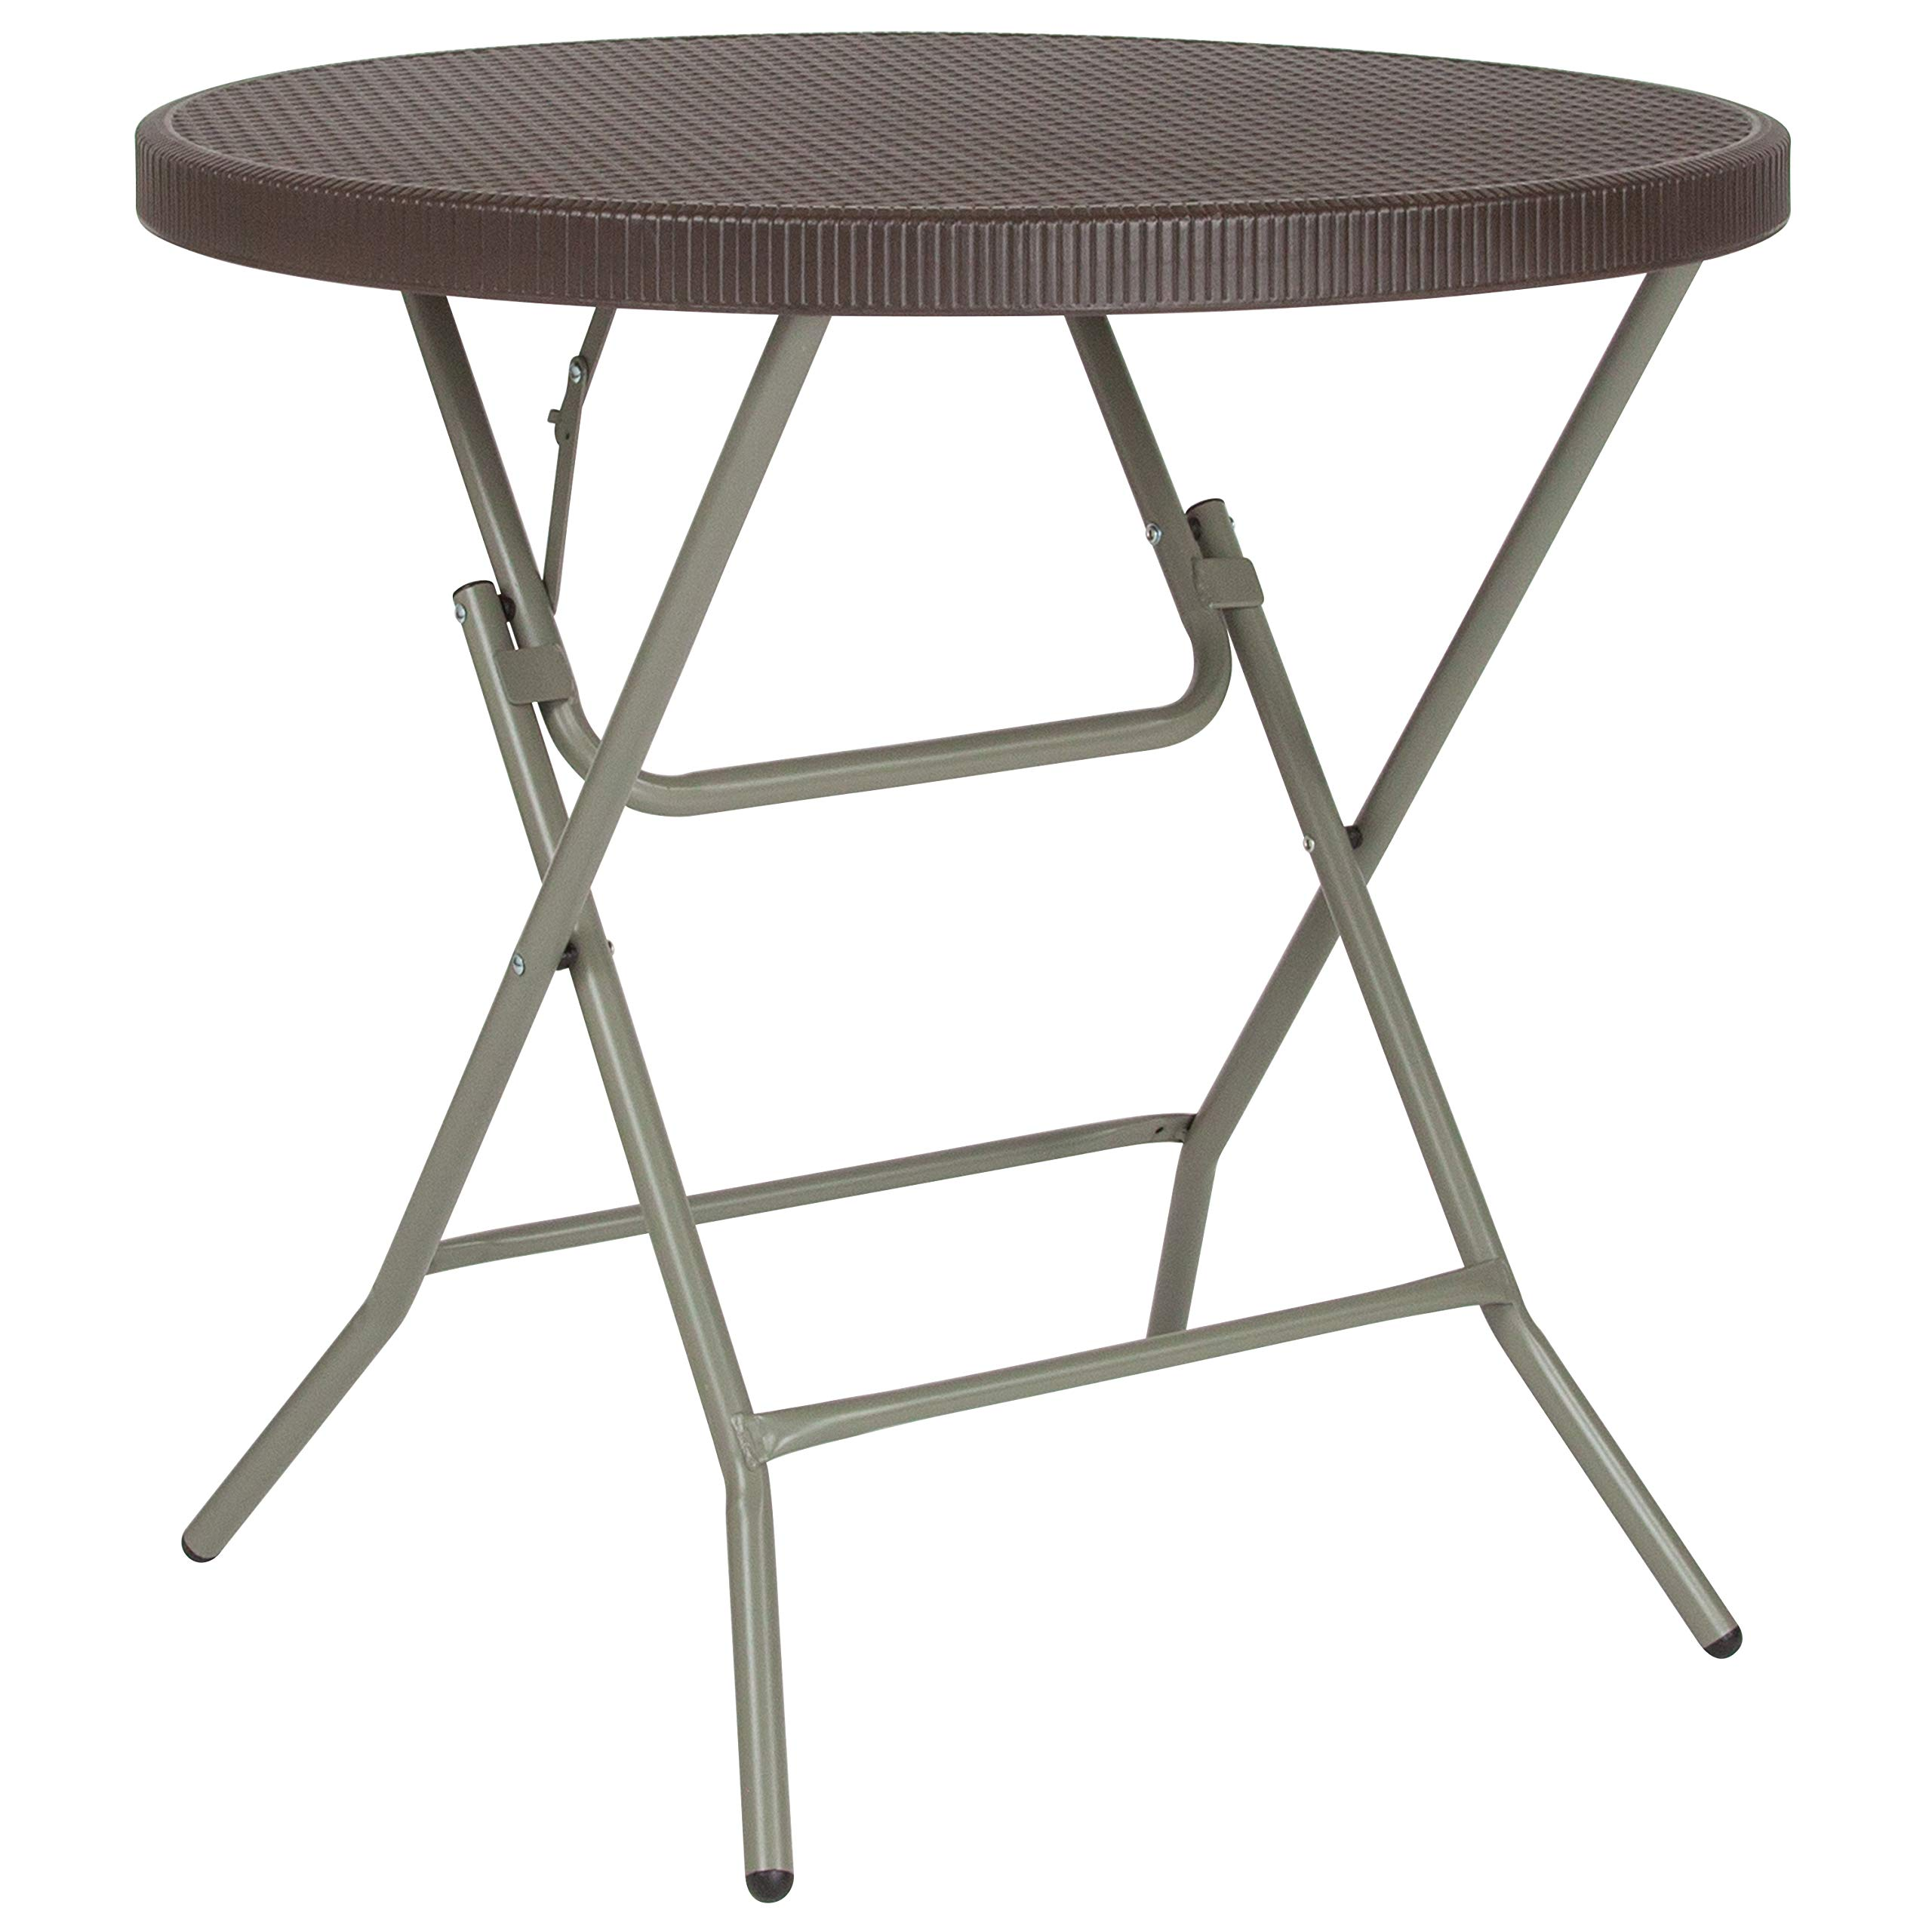 Flash Furniture 31.5'' Round Brown Rattan Plastic Folding Table by Flash Furniture